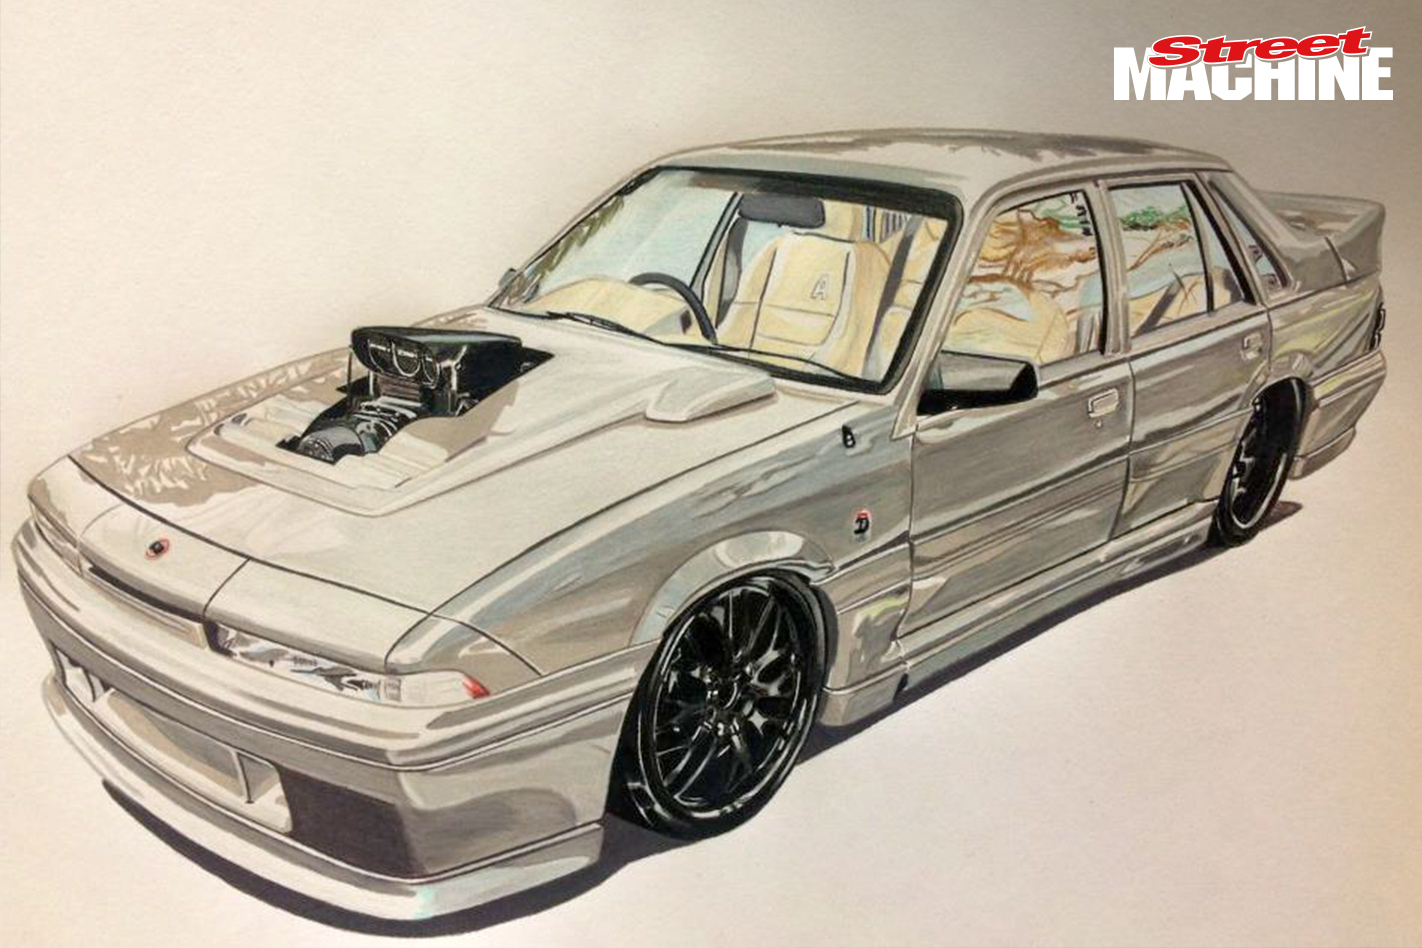 VL Commodore Blown 2ANGRY Sketch